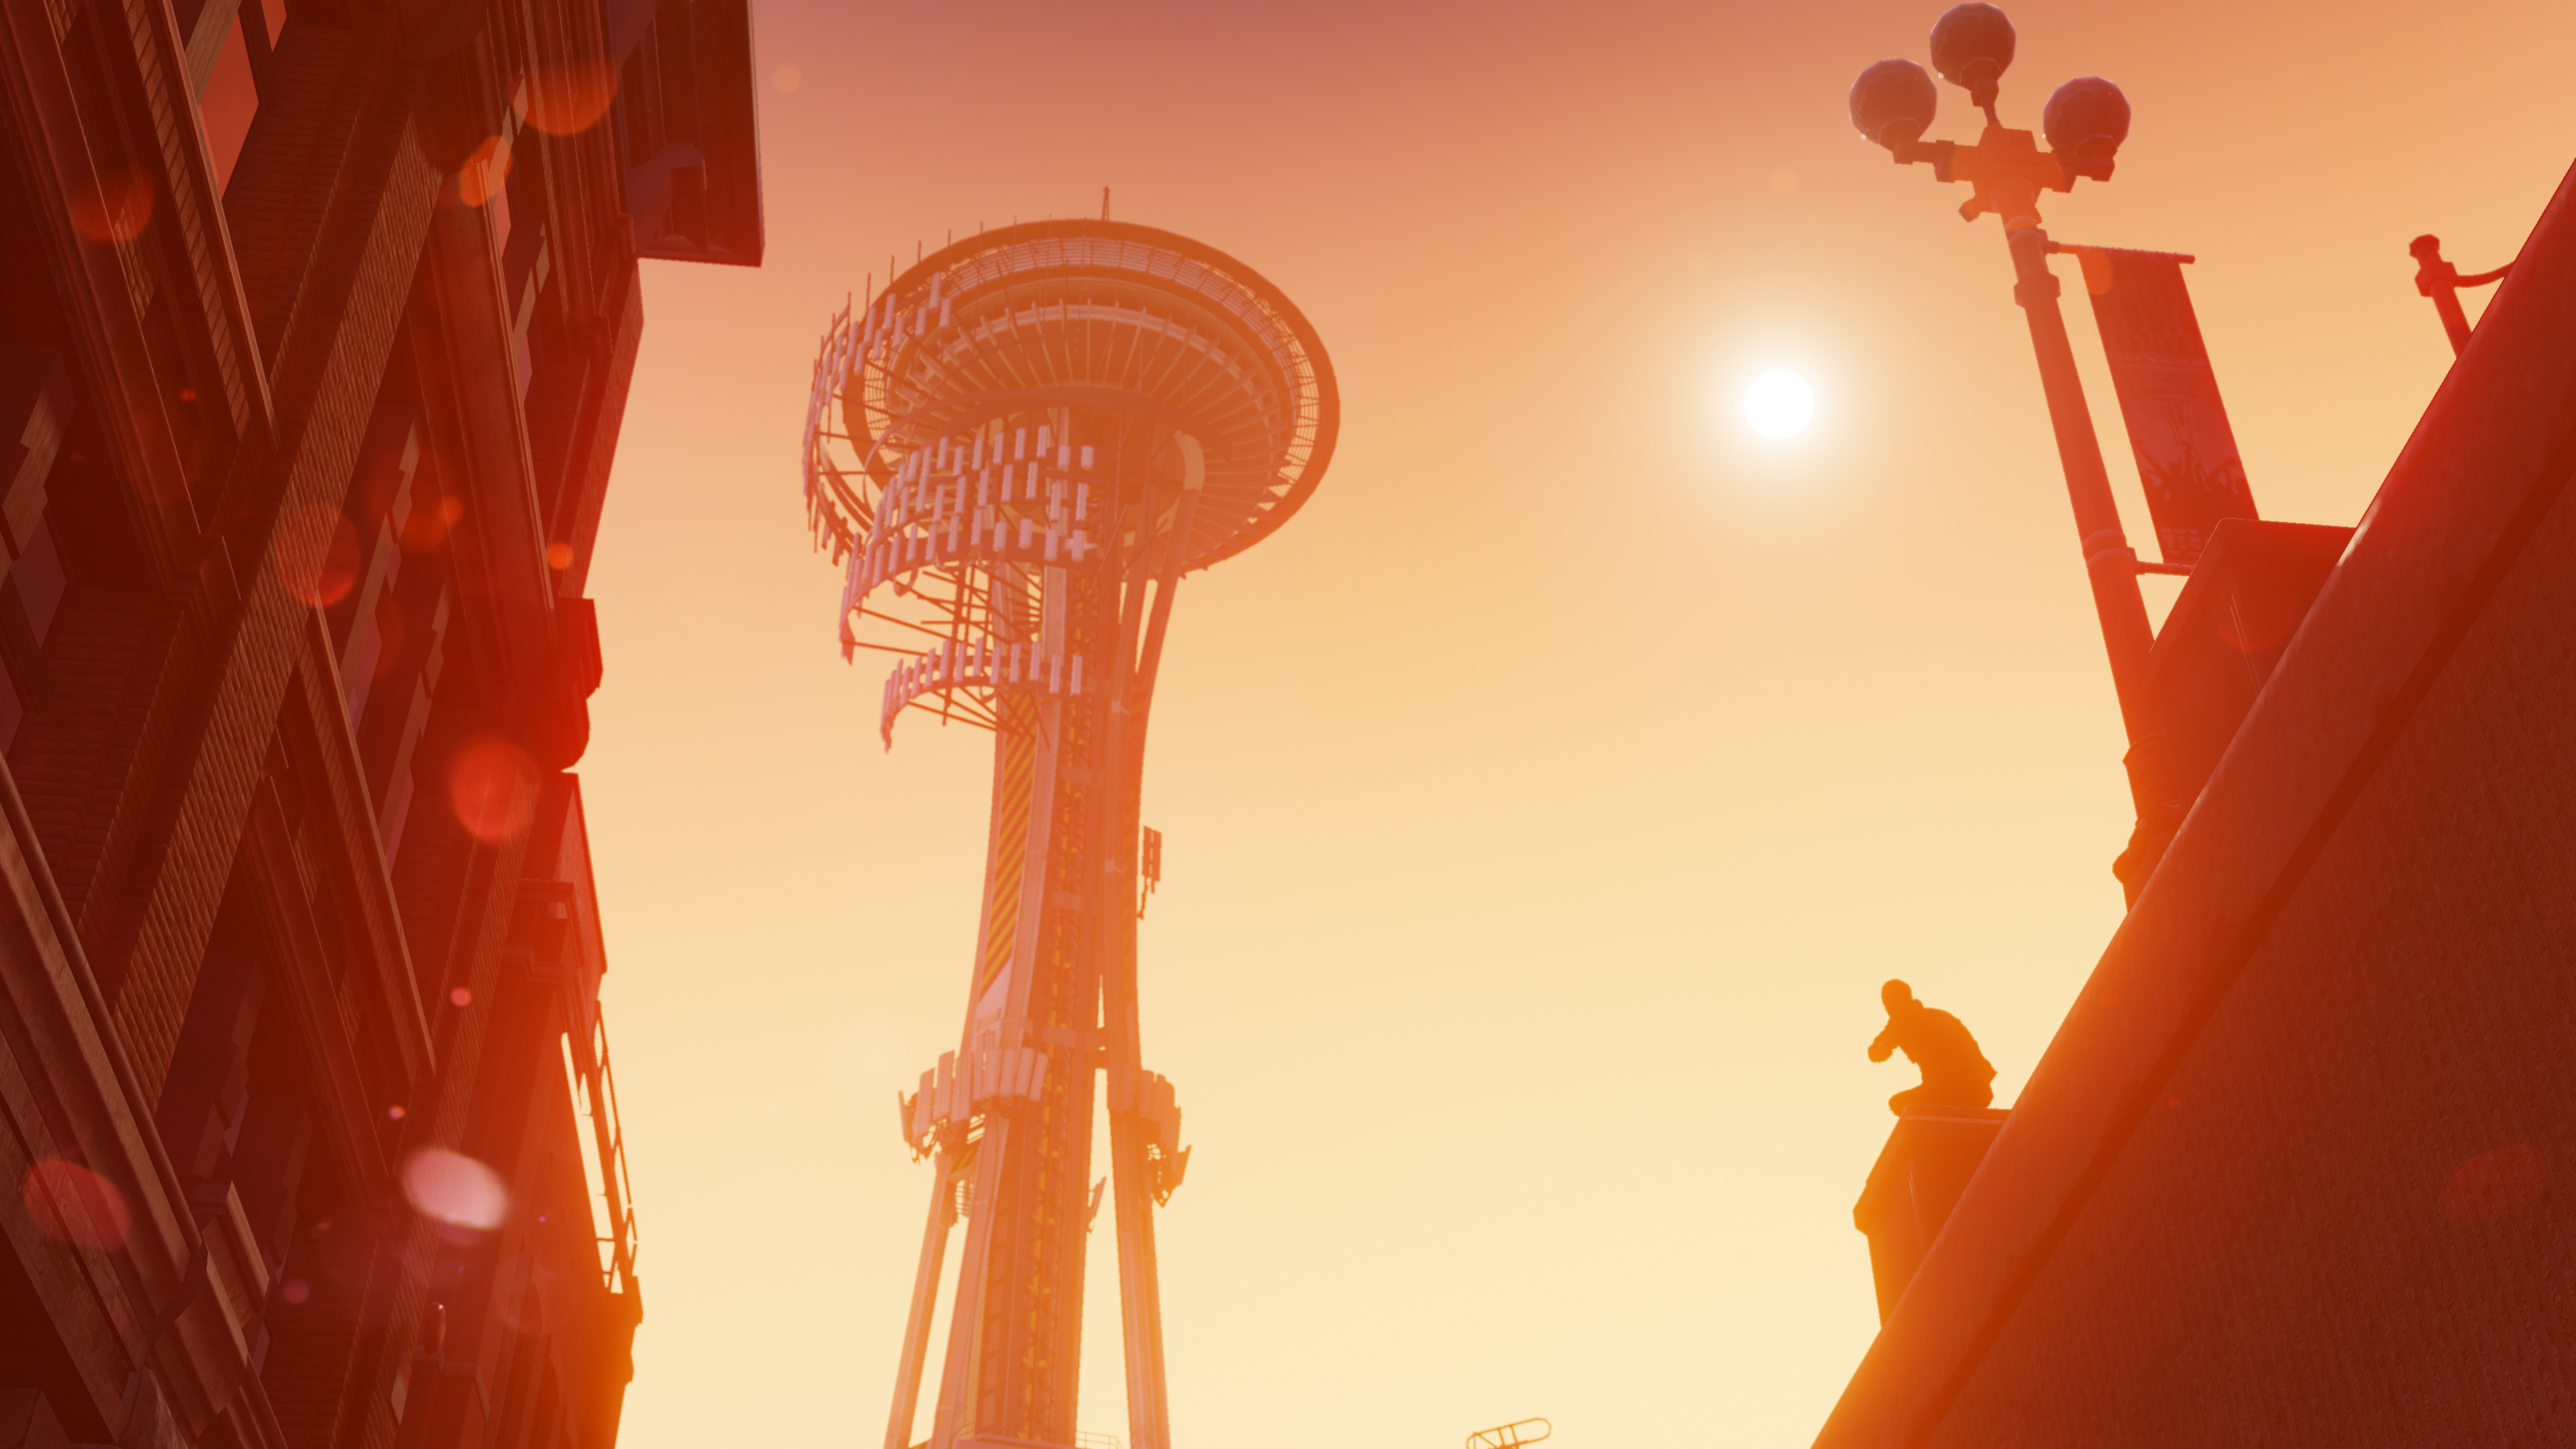 bmuploads_2013-06-11_4021_infamous_second_son_needle-sunset